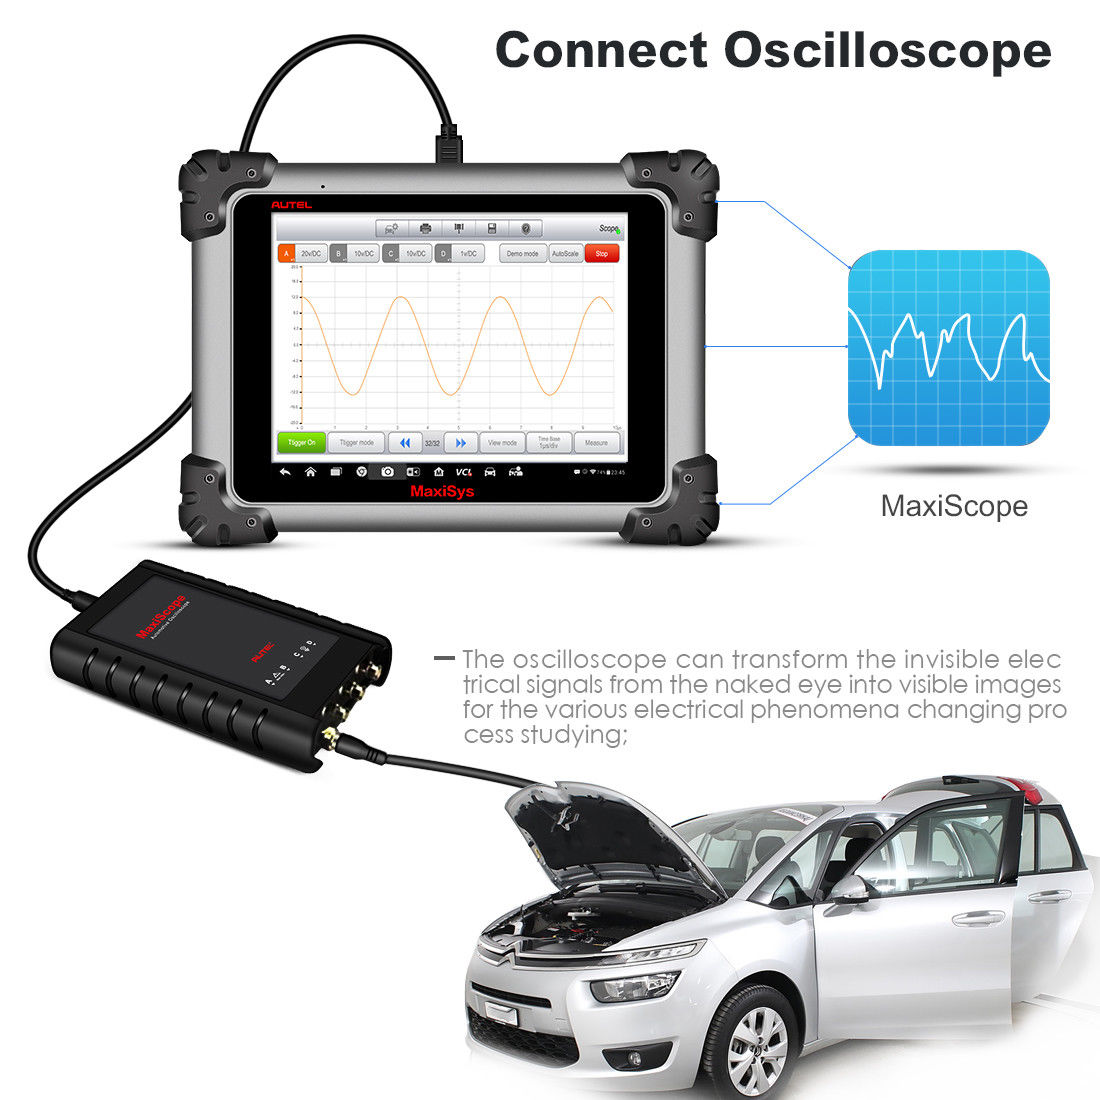 autel ms908 Connects to oscilloscope camera mv108